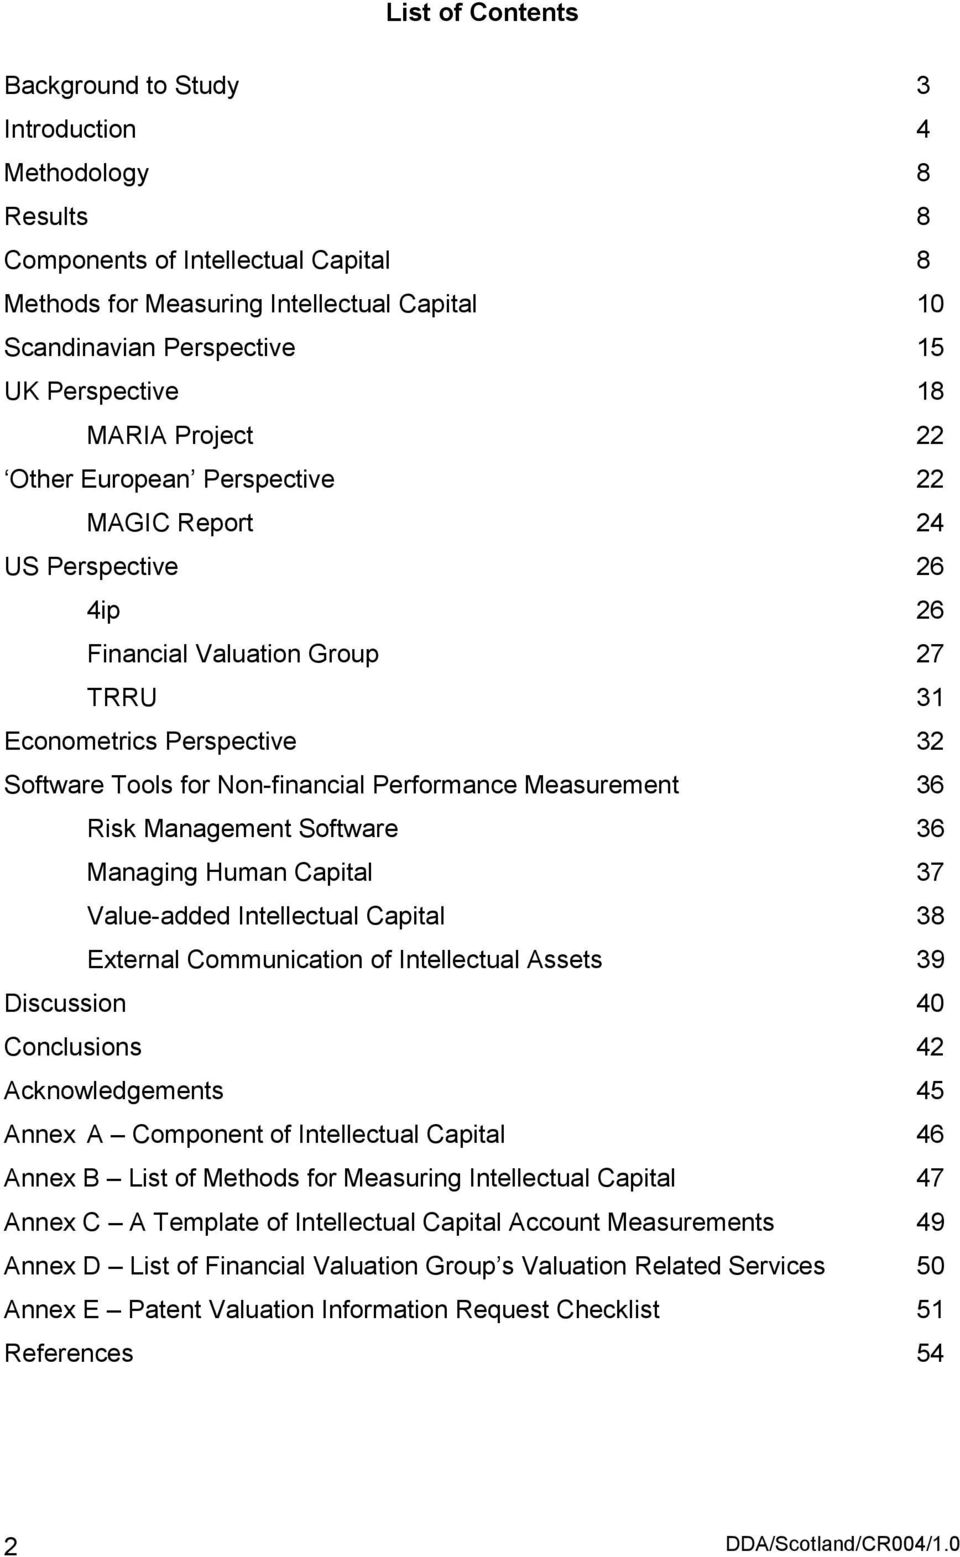 Non-financial Performance Measurement 36 Risk Management Software 36 Managing Human Capital 37 Value-added Intellectual Capital 38 External Communication of Intellectual Assets 39 Discussion 40